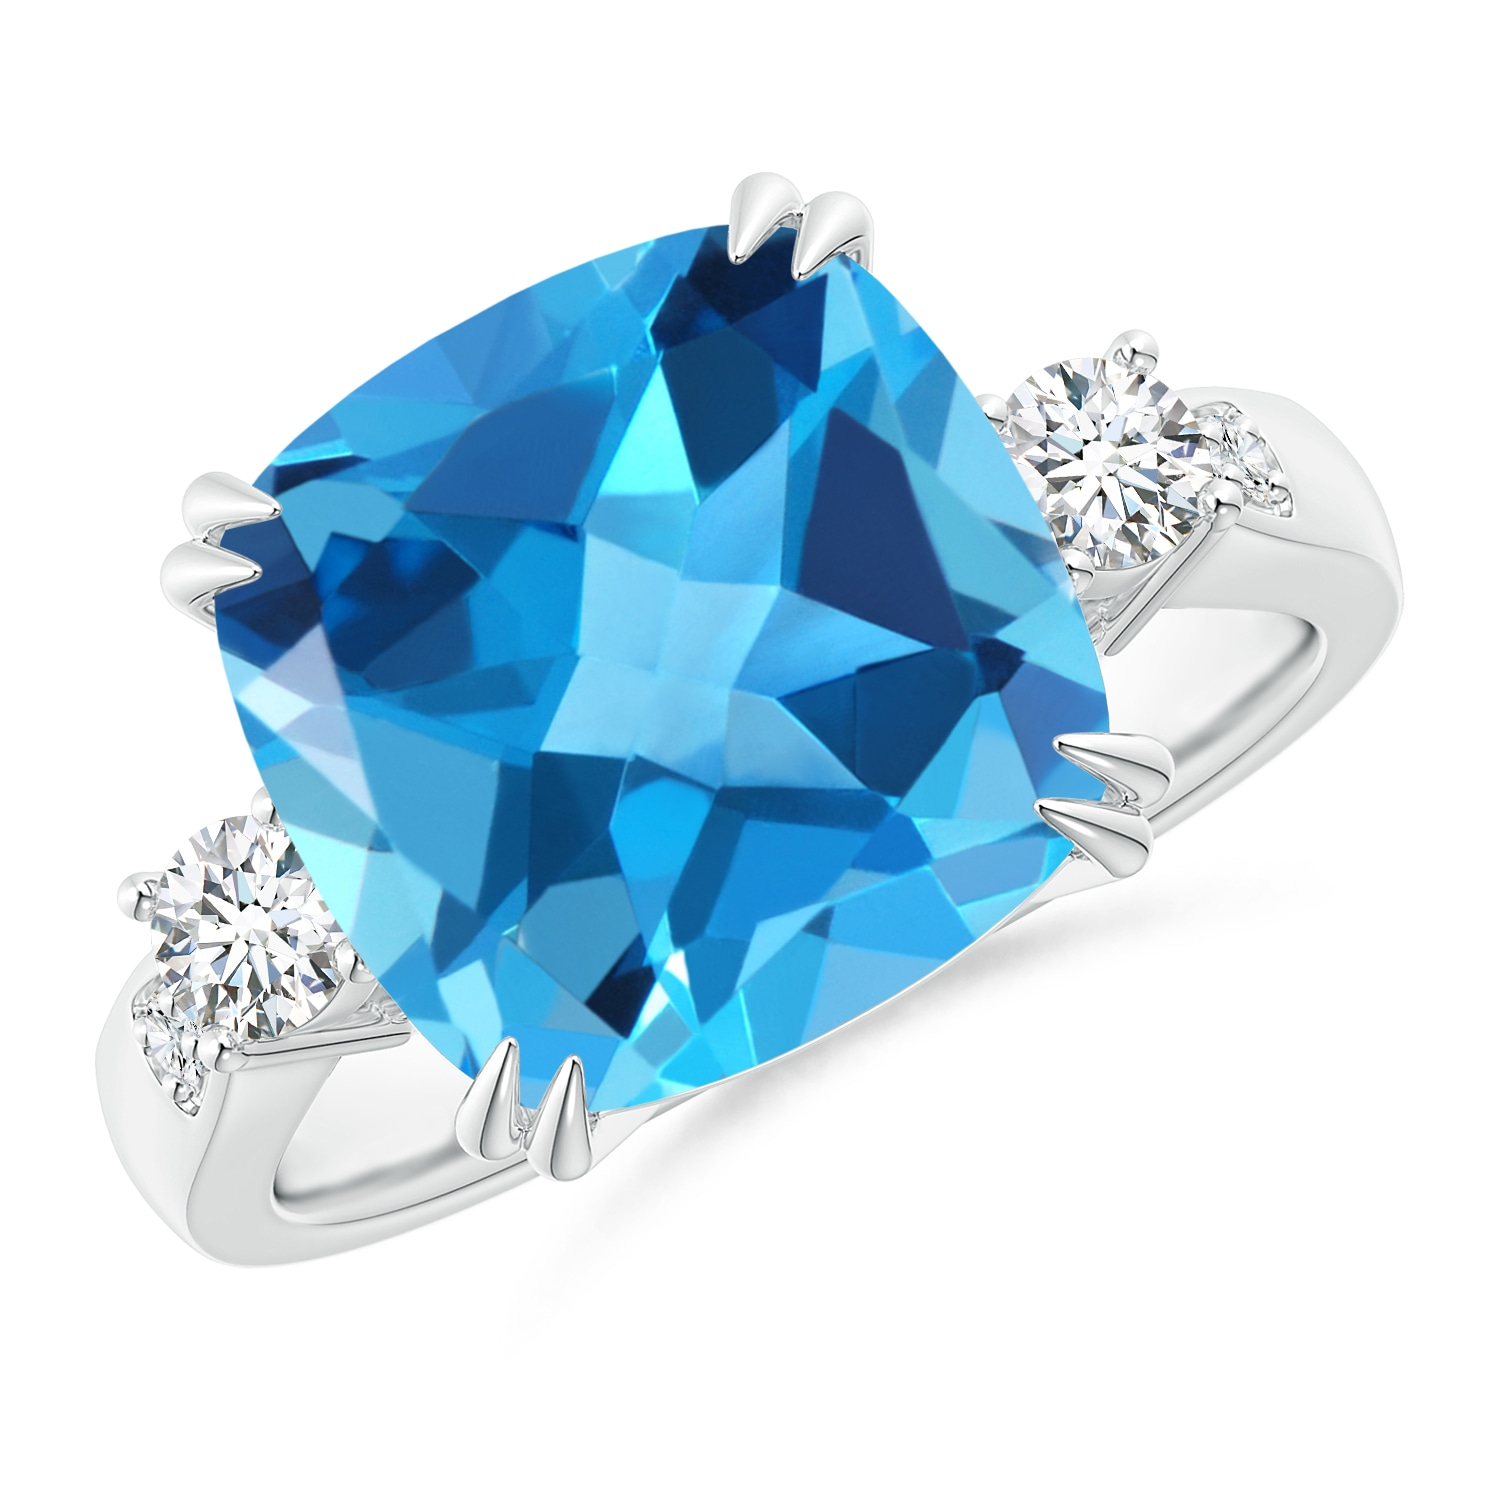 Cushion Swiss Blue Topaz Solitaire Ring with Diamond Accents - Angara.com